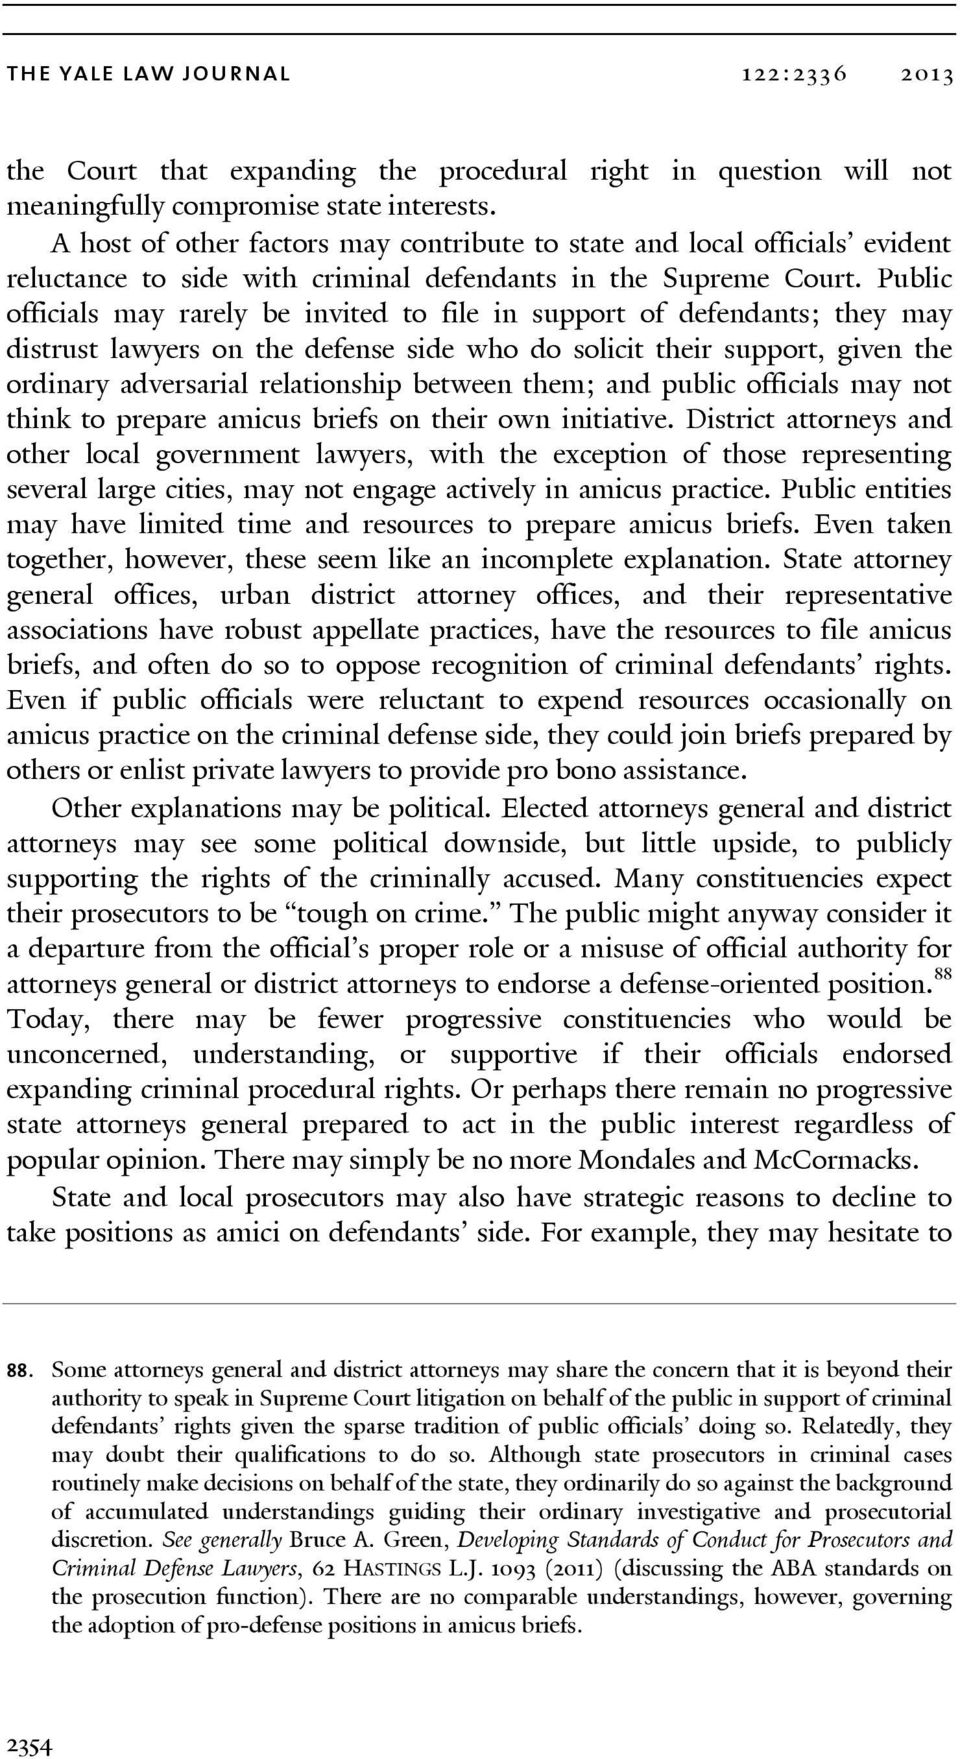 Public officials may rarely be invited to file in support of defendants; they may distrust lawyers on the defense side who do solicit their support, given the ordinary adversarial relationship